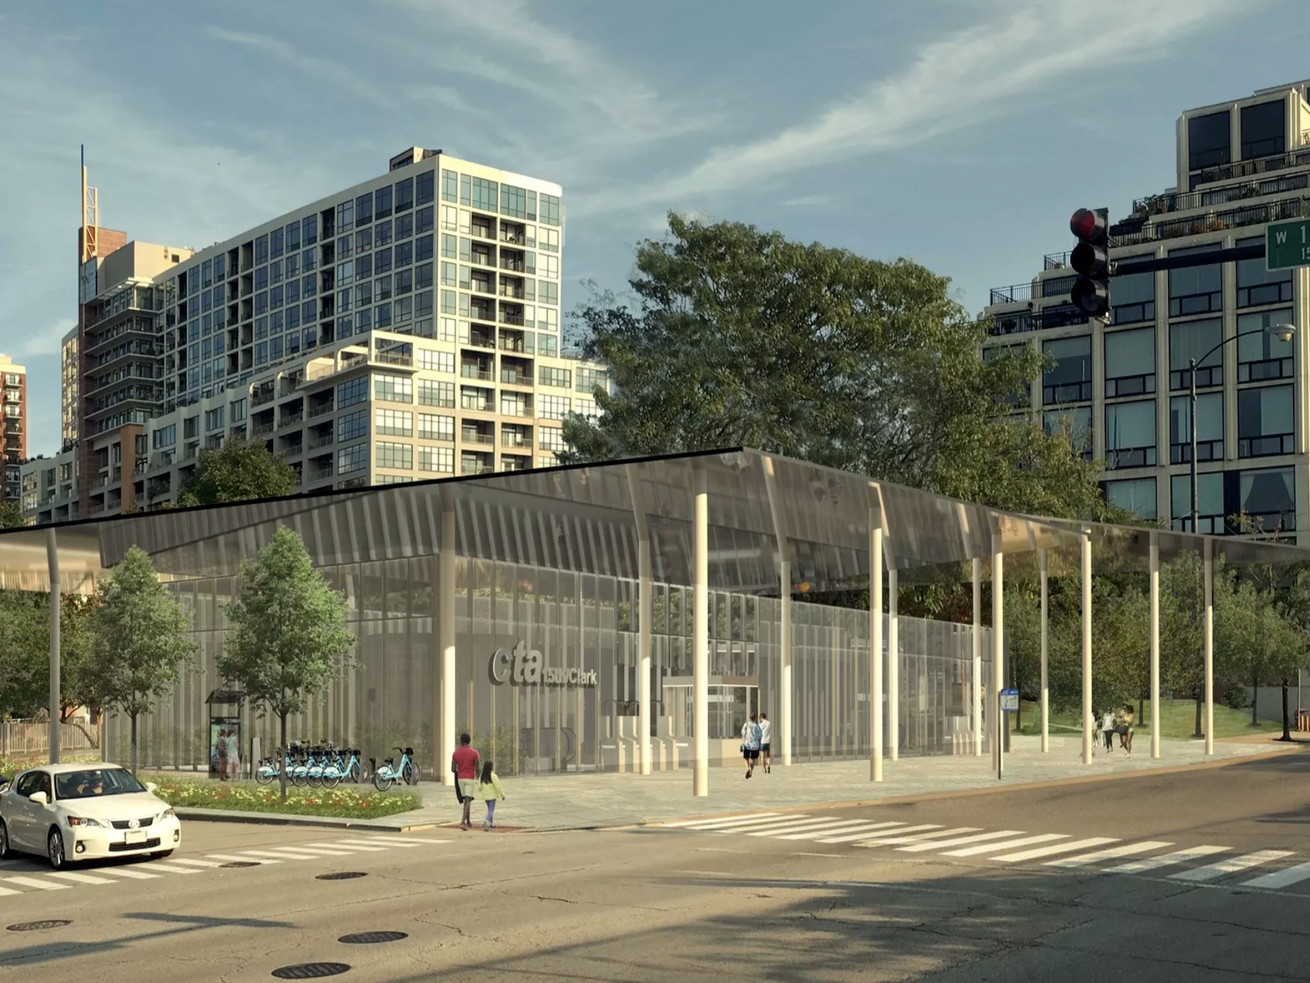 A rendering of the 15th Street Red Line station designed by Ross Barney Architects.